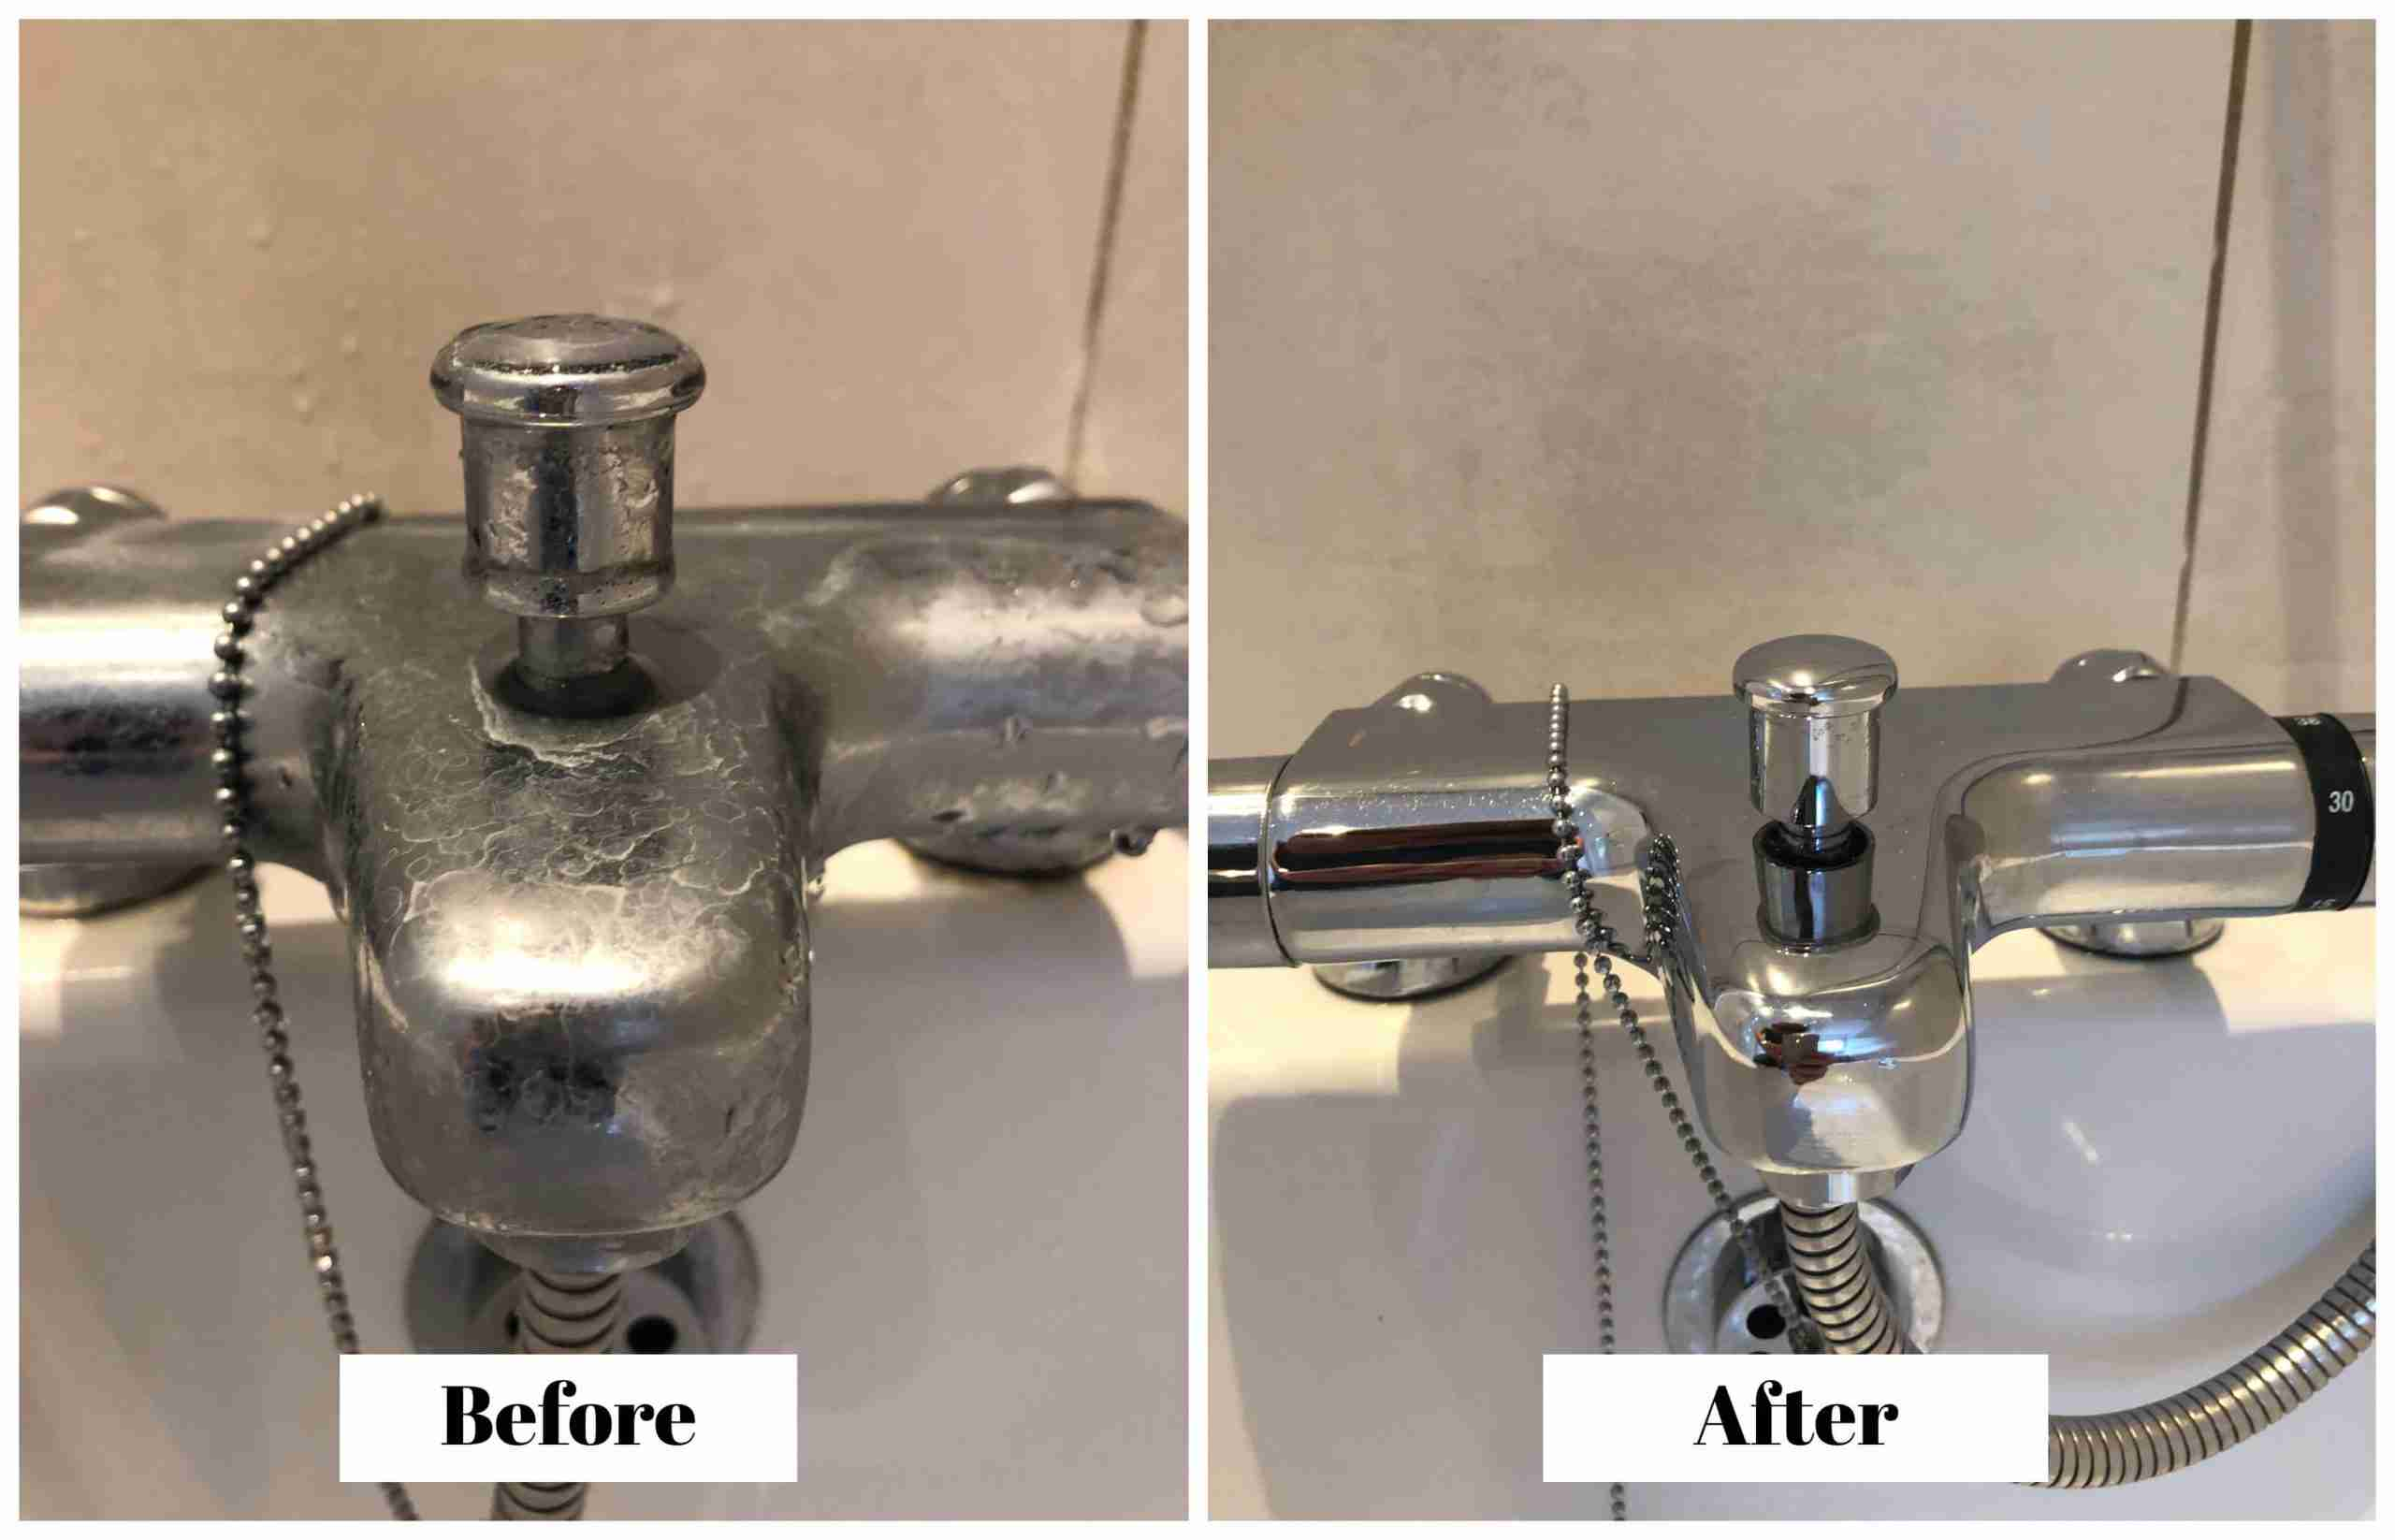 Bath tap cleaning/descaling